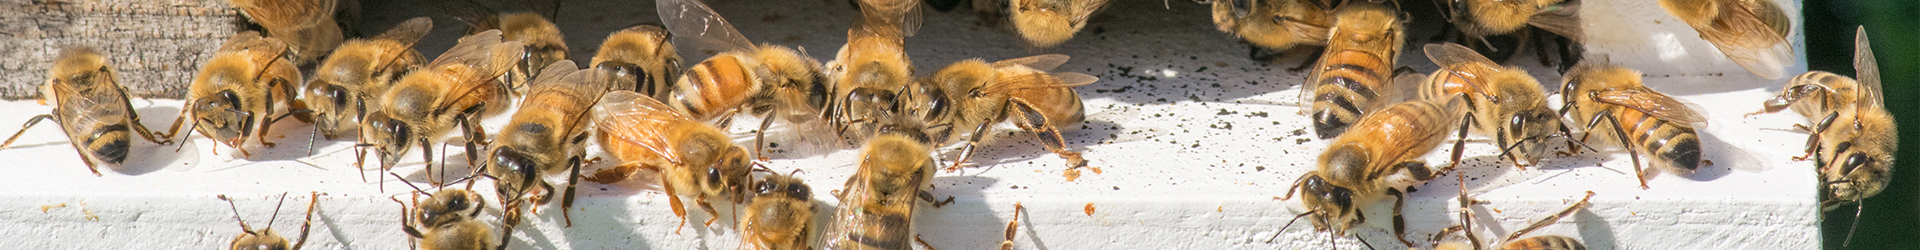 bees on bee hive header